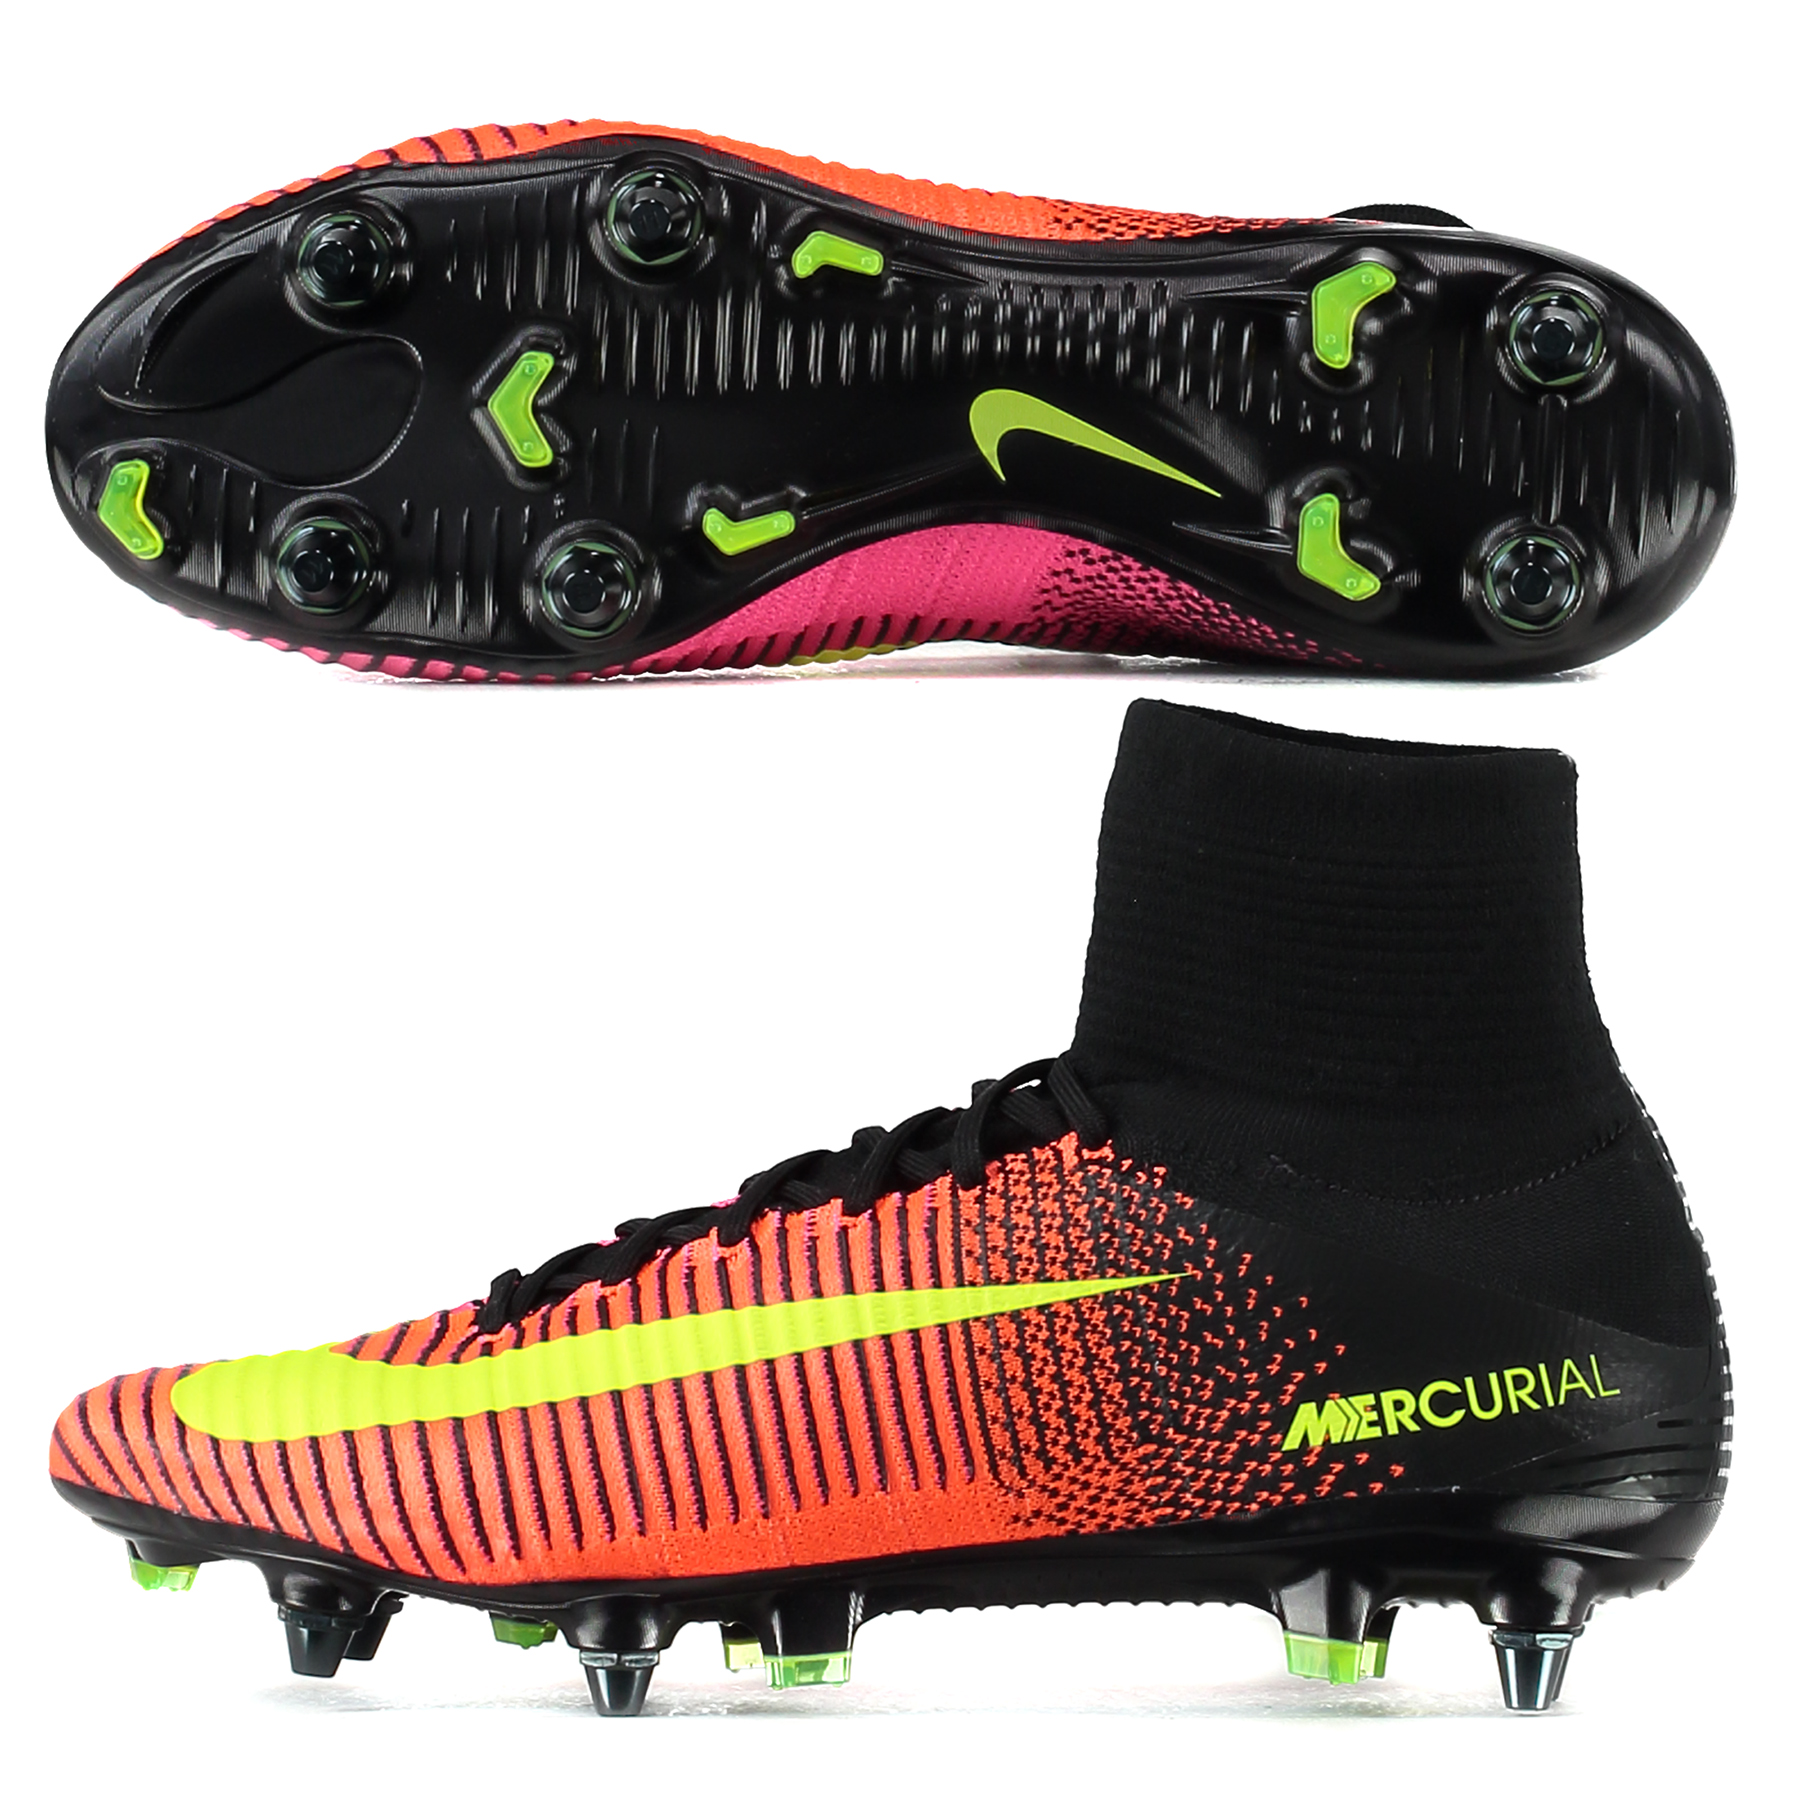 Nike Mercurial Superfly V Soft Ground-Pro Football Boots - Total Crims